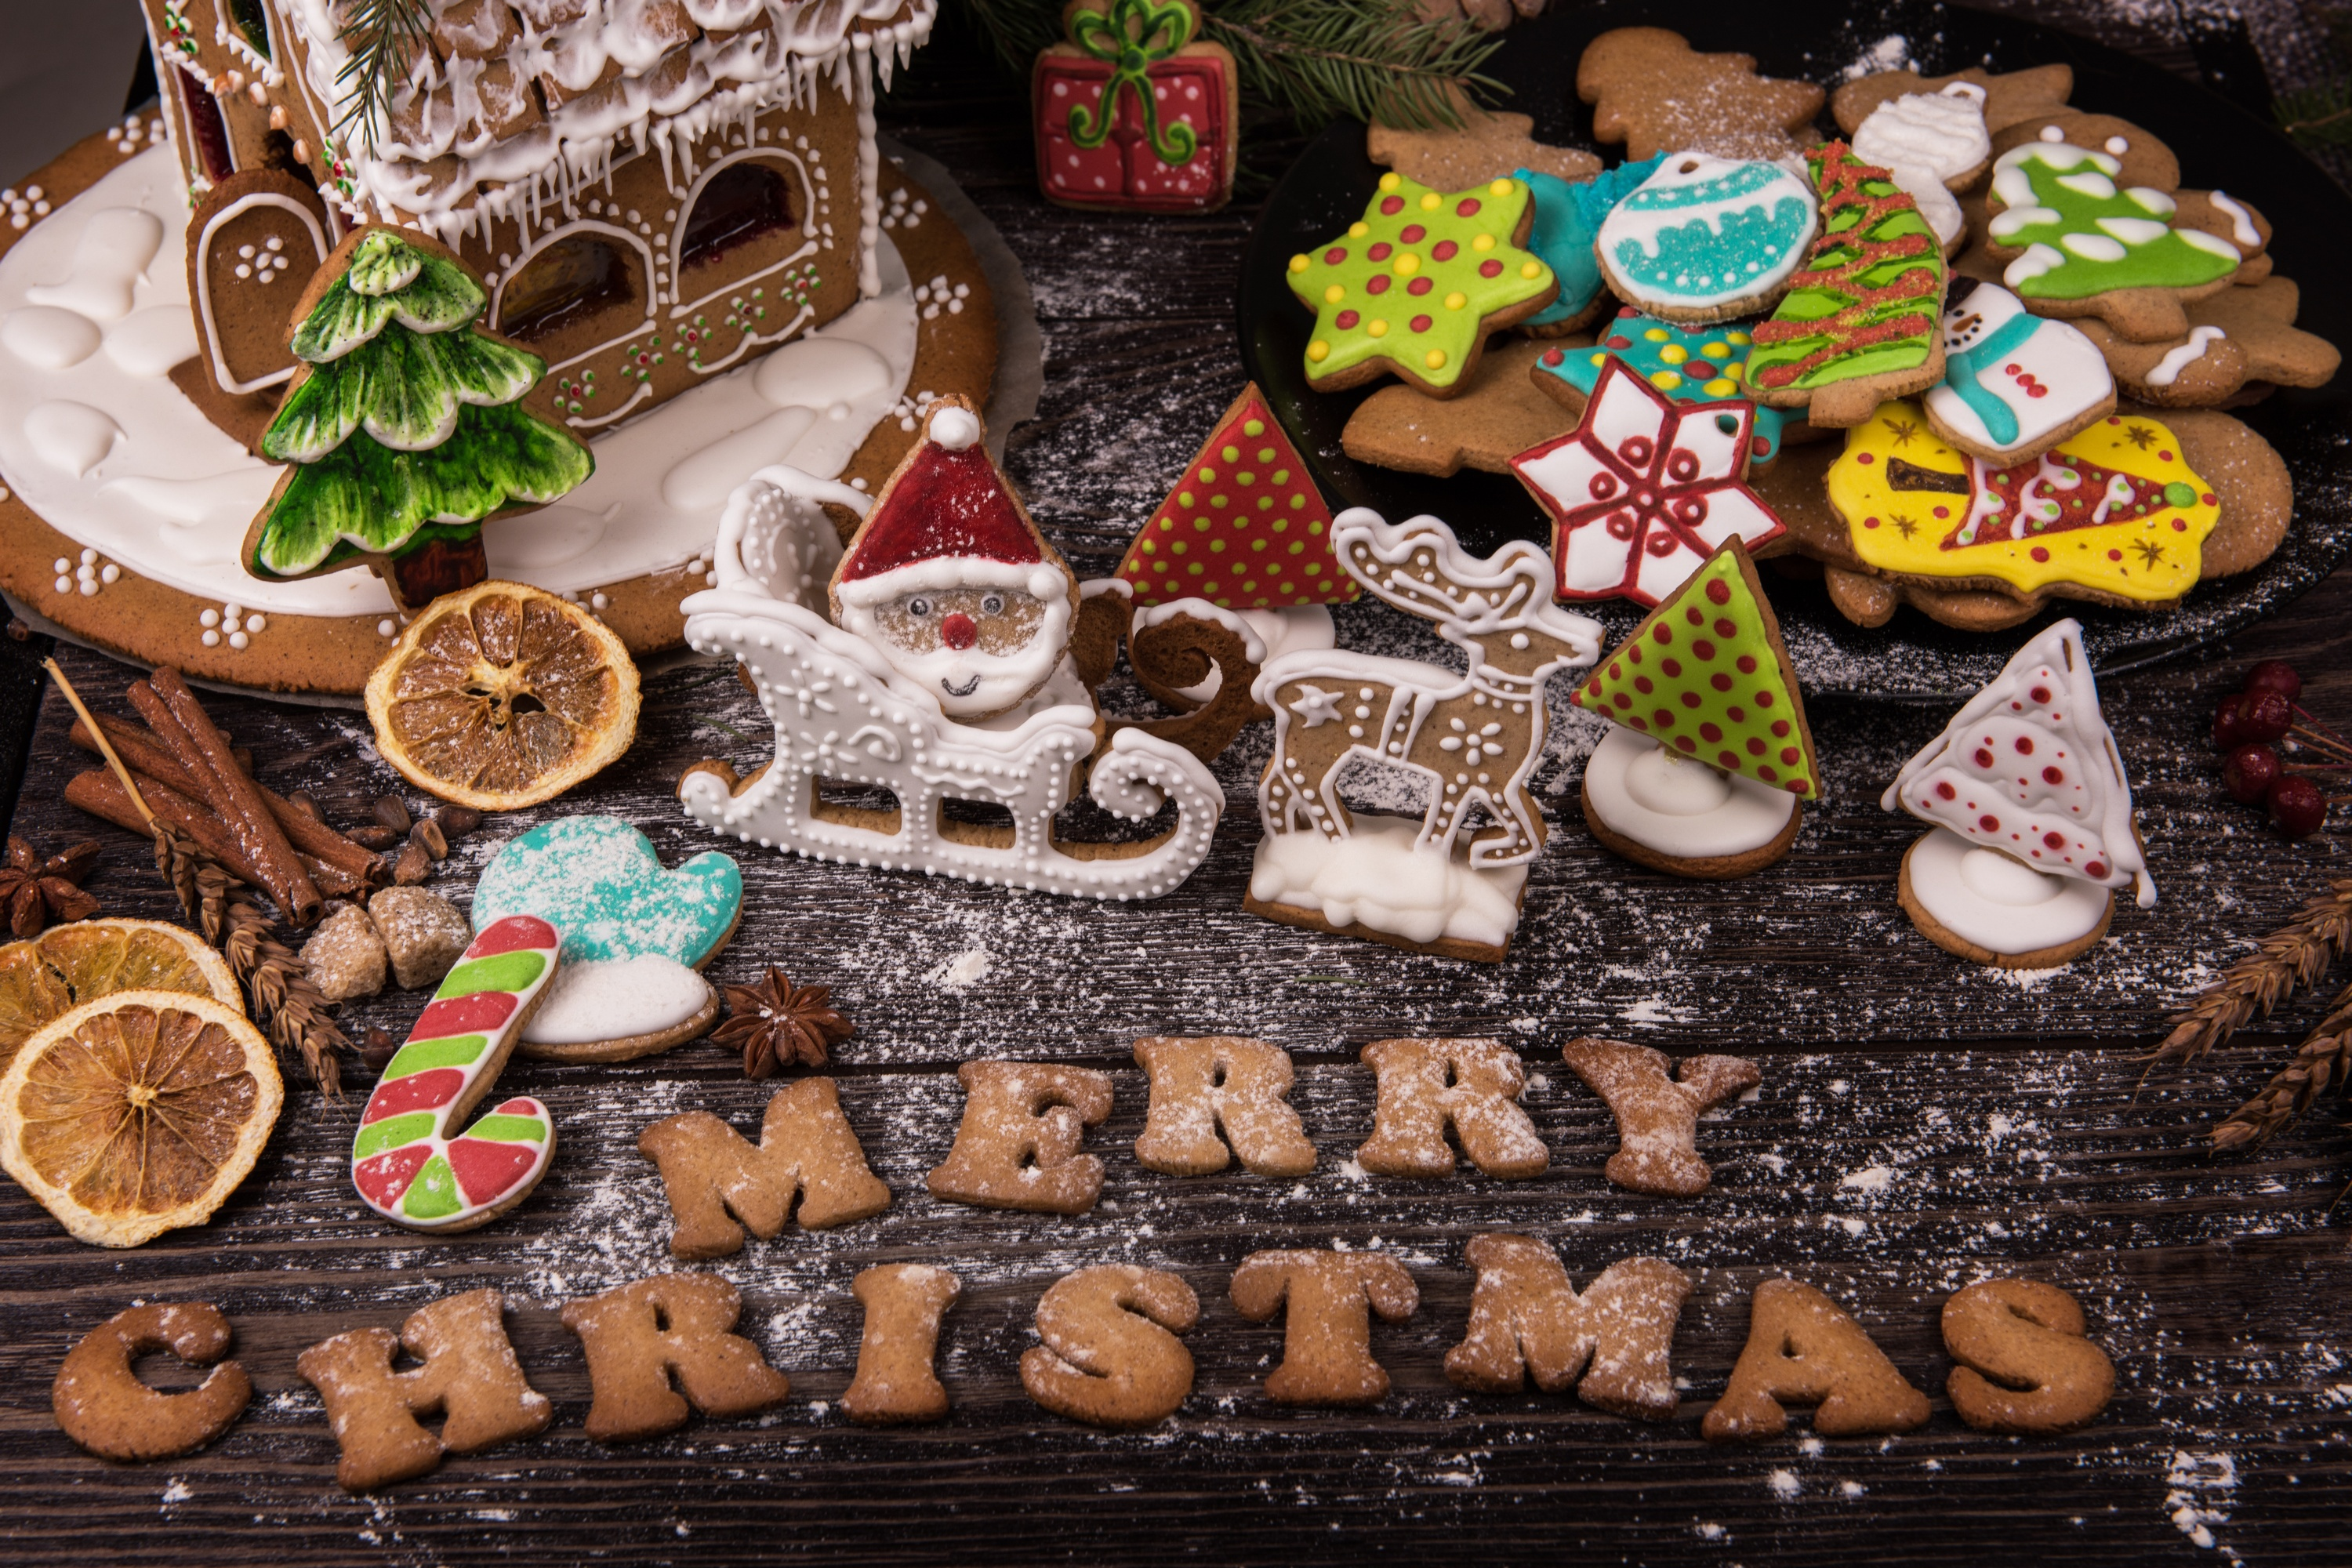 Wallpaper Treats for the holiday and cookies with the letters Merry Christmas